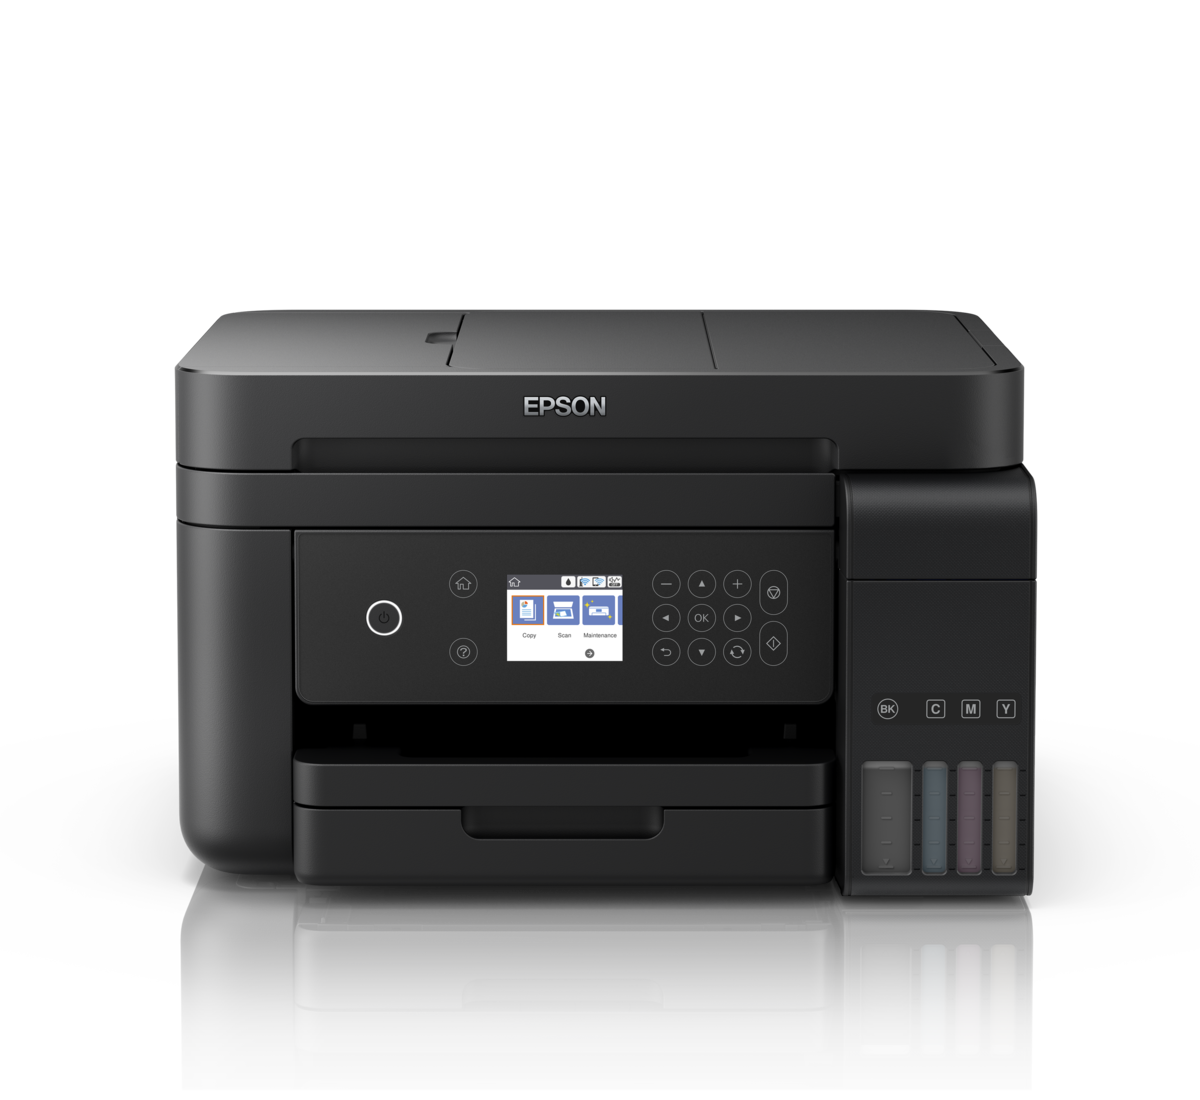 Epson L6170 Wi-Fi Duplex All-in-One Ink Tank Printer with ADF